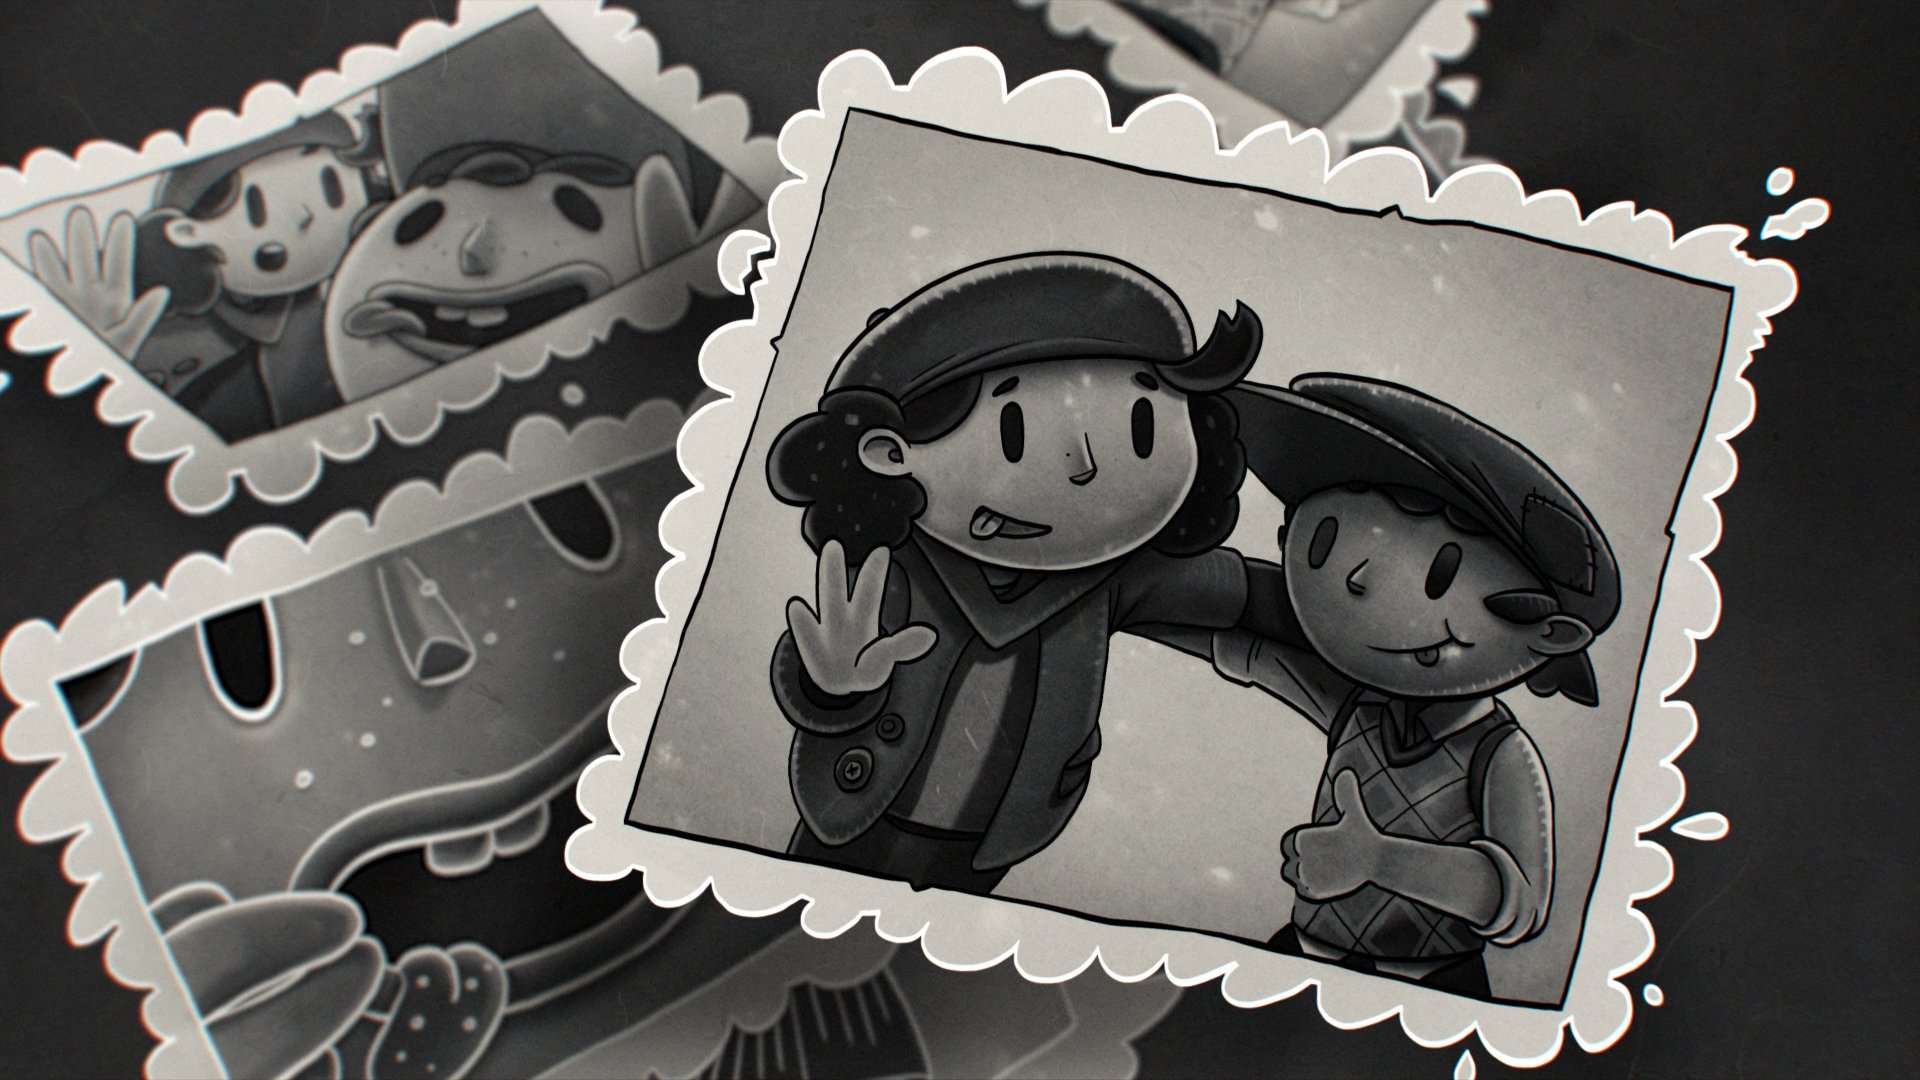 My Memory of Us Is Now Available on iOS Devices From Indie Developer Juggler Games